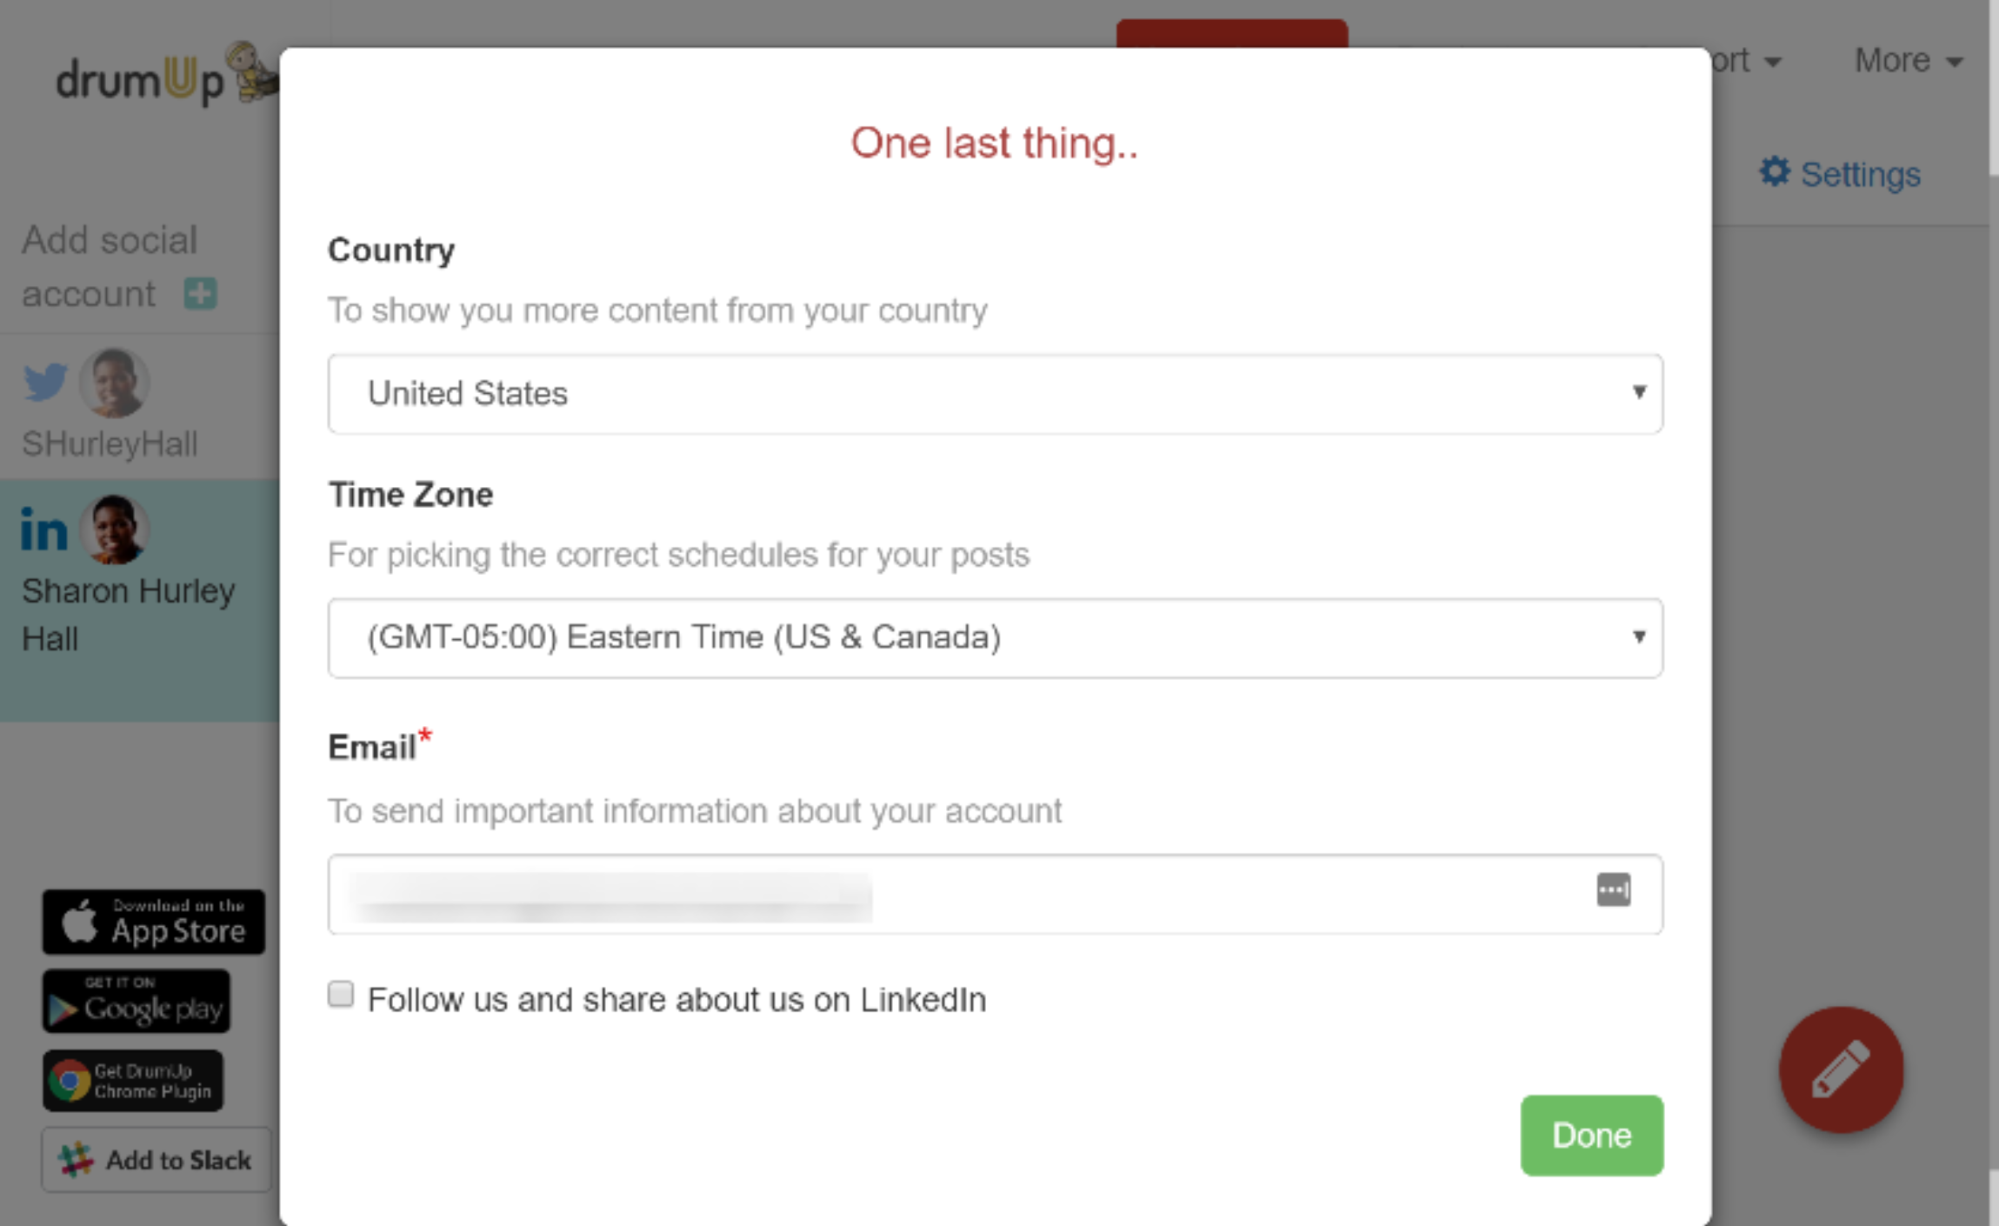 Adding country information to content tool DrumUp